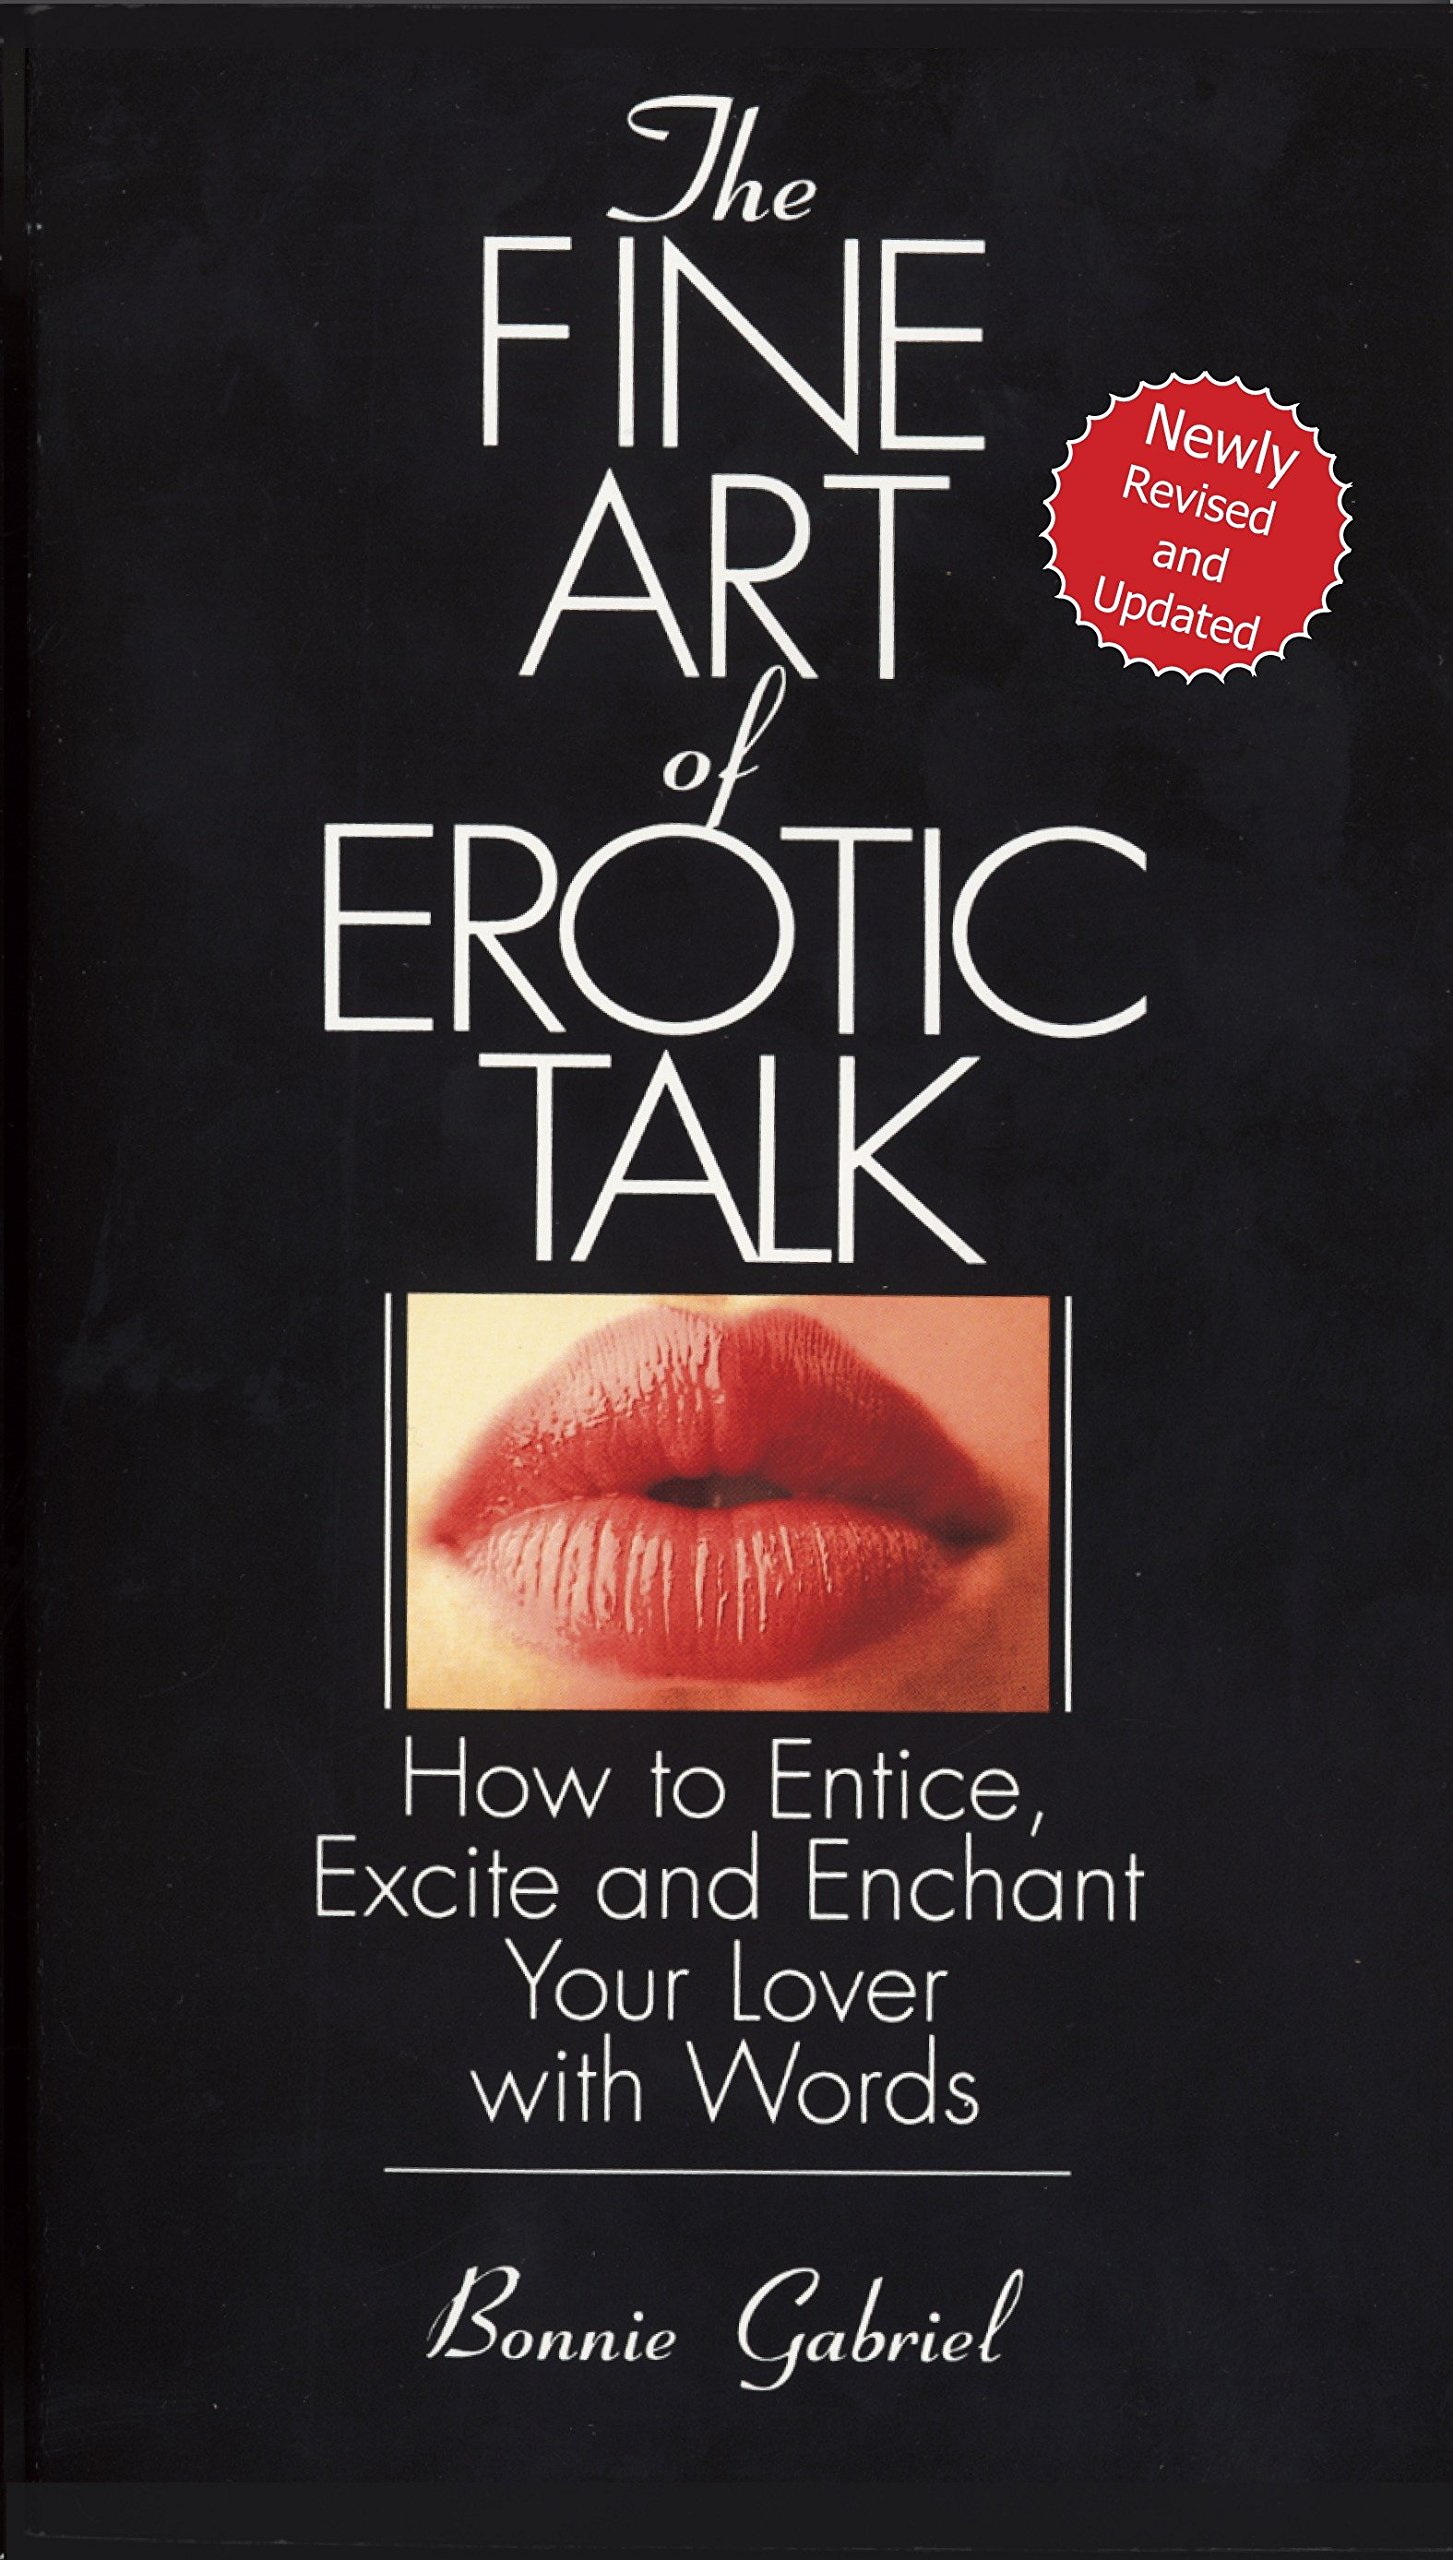 Art enchant entice erotic excite fine lover talk words